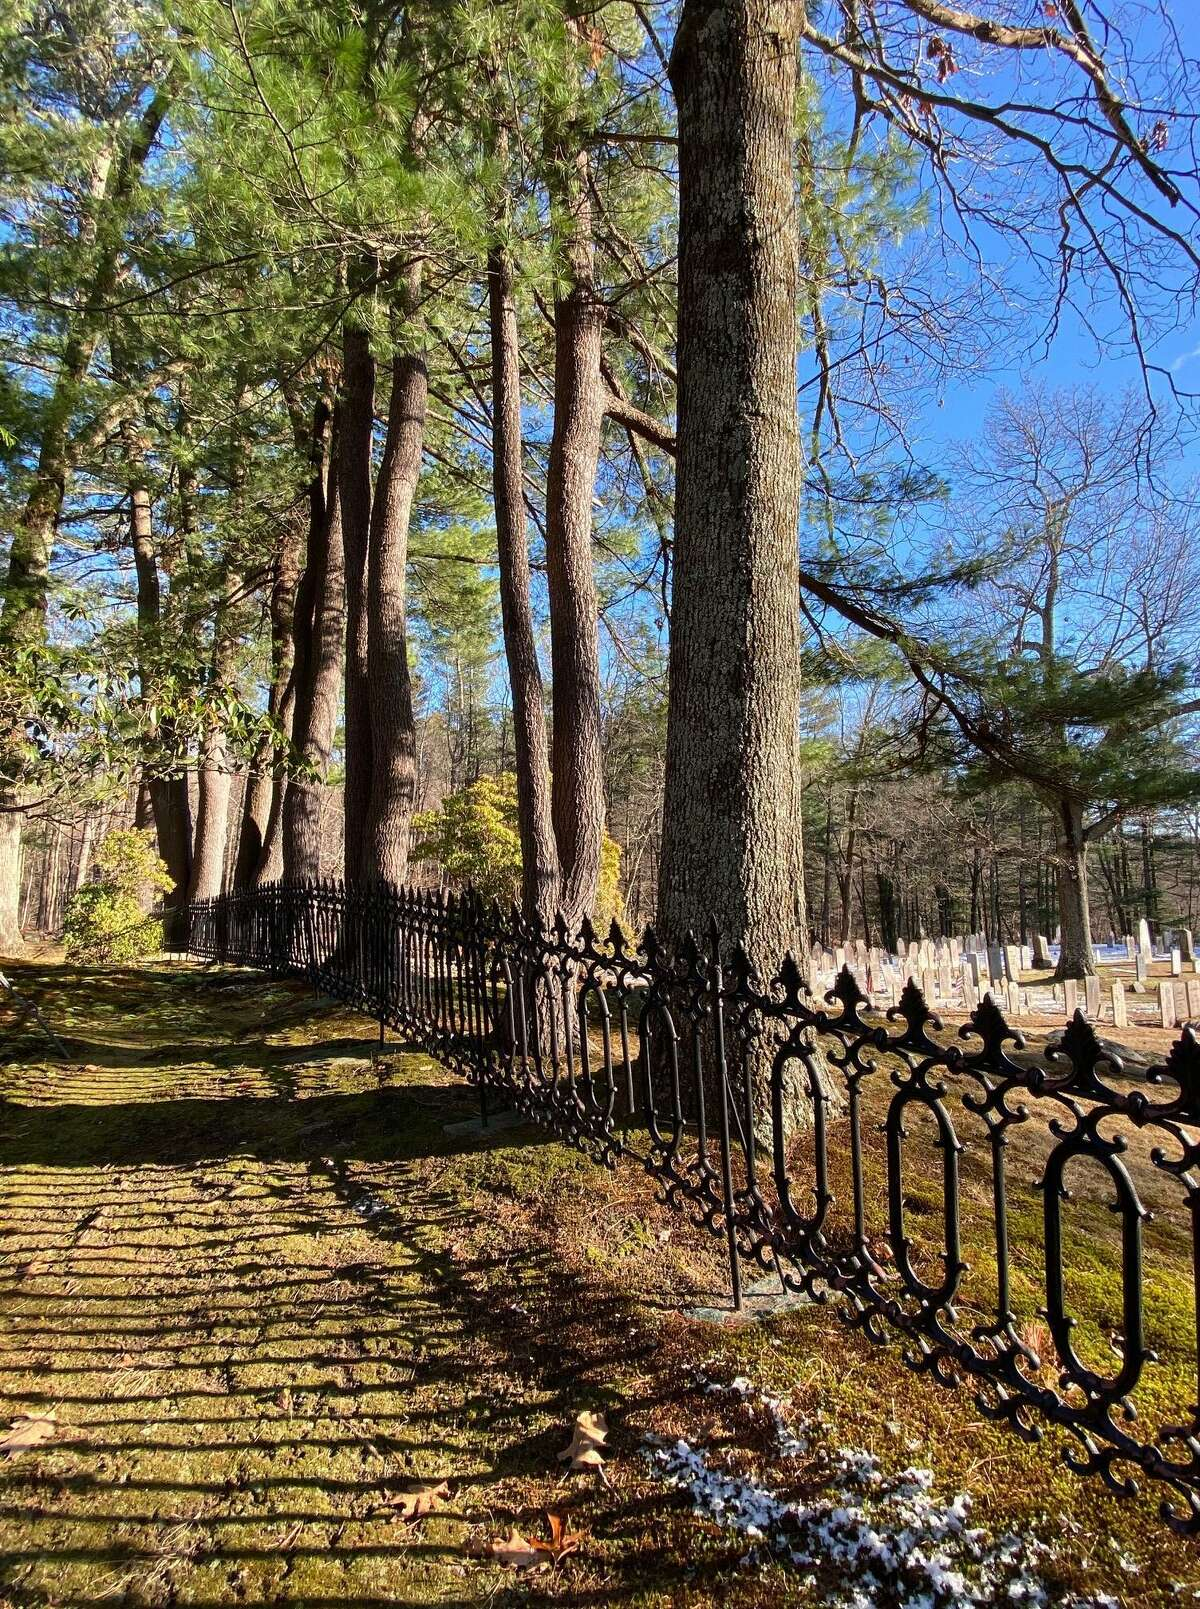 The striking fence that borders Judea Cemetery casts shadows on the browning grass along Judea Cemetery Road.